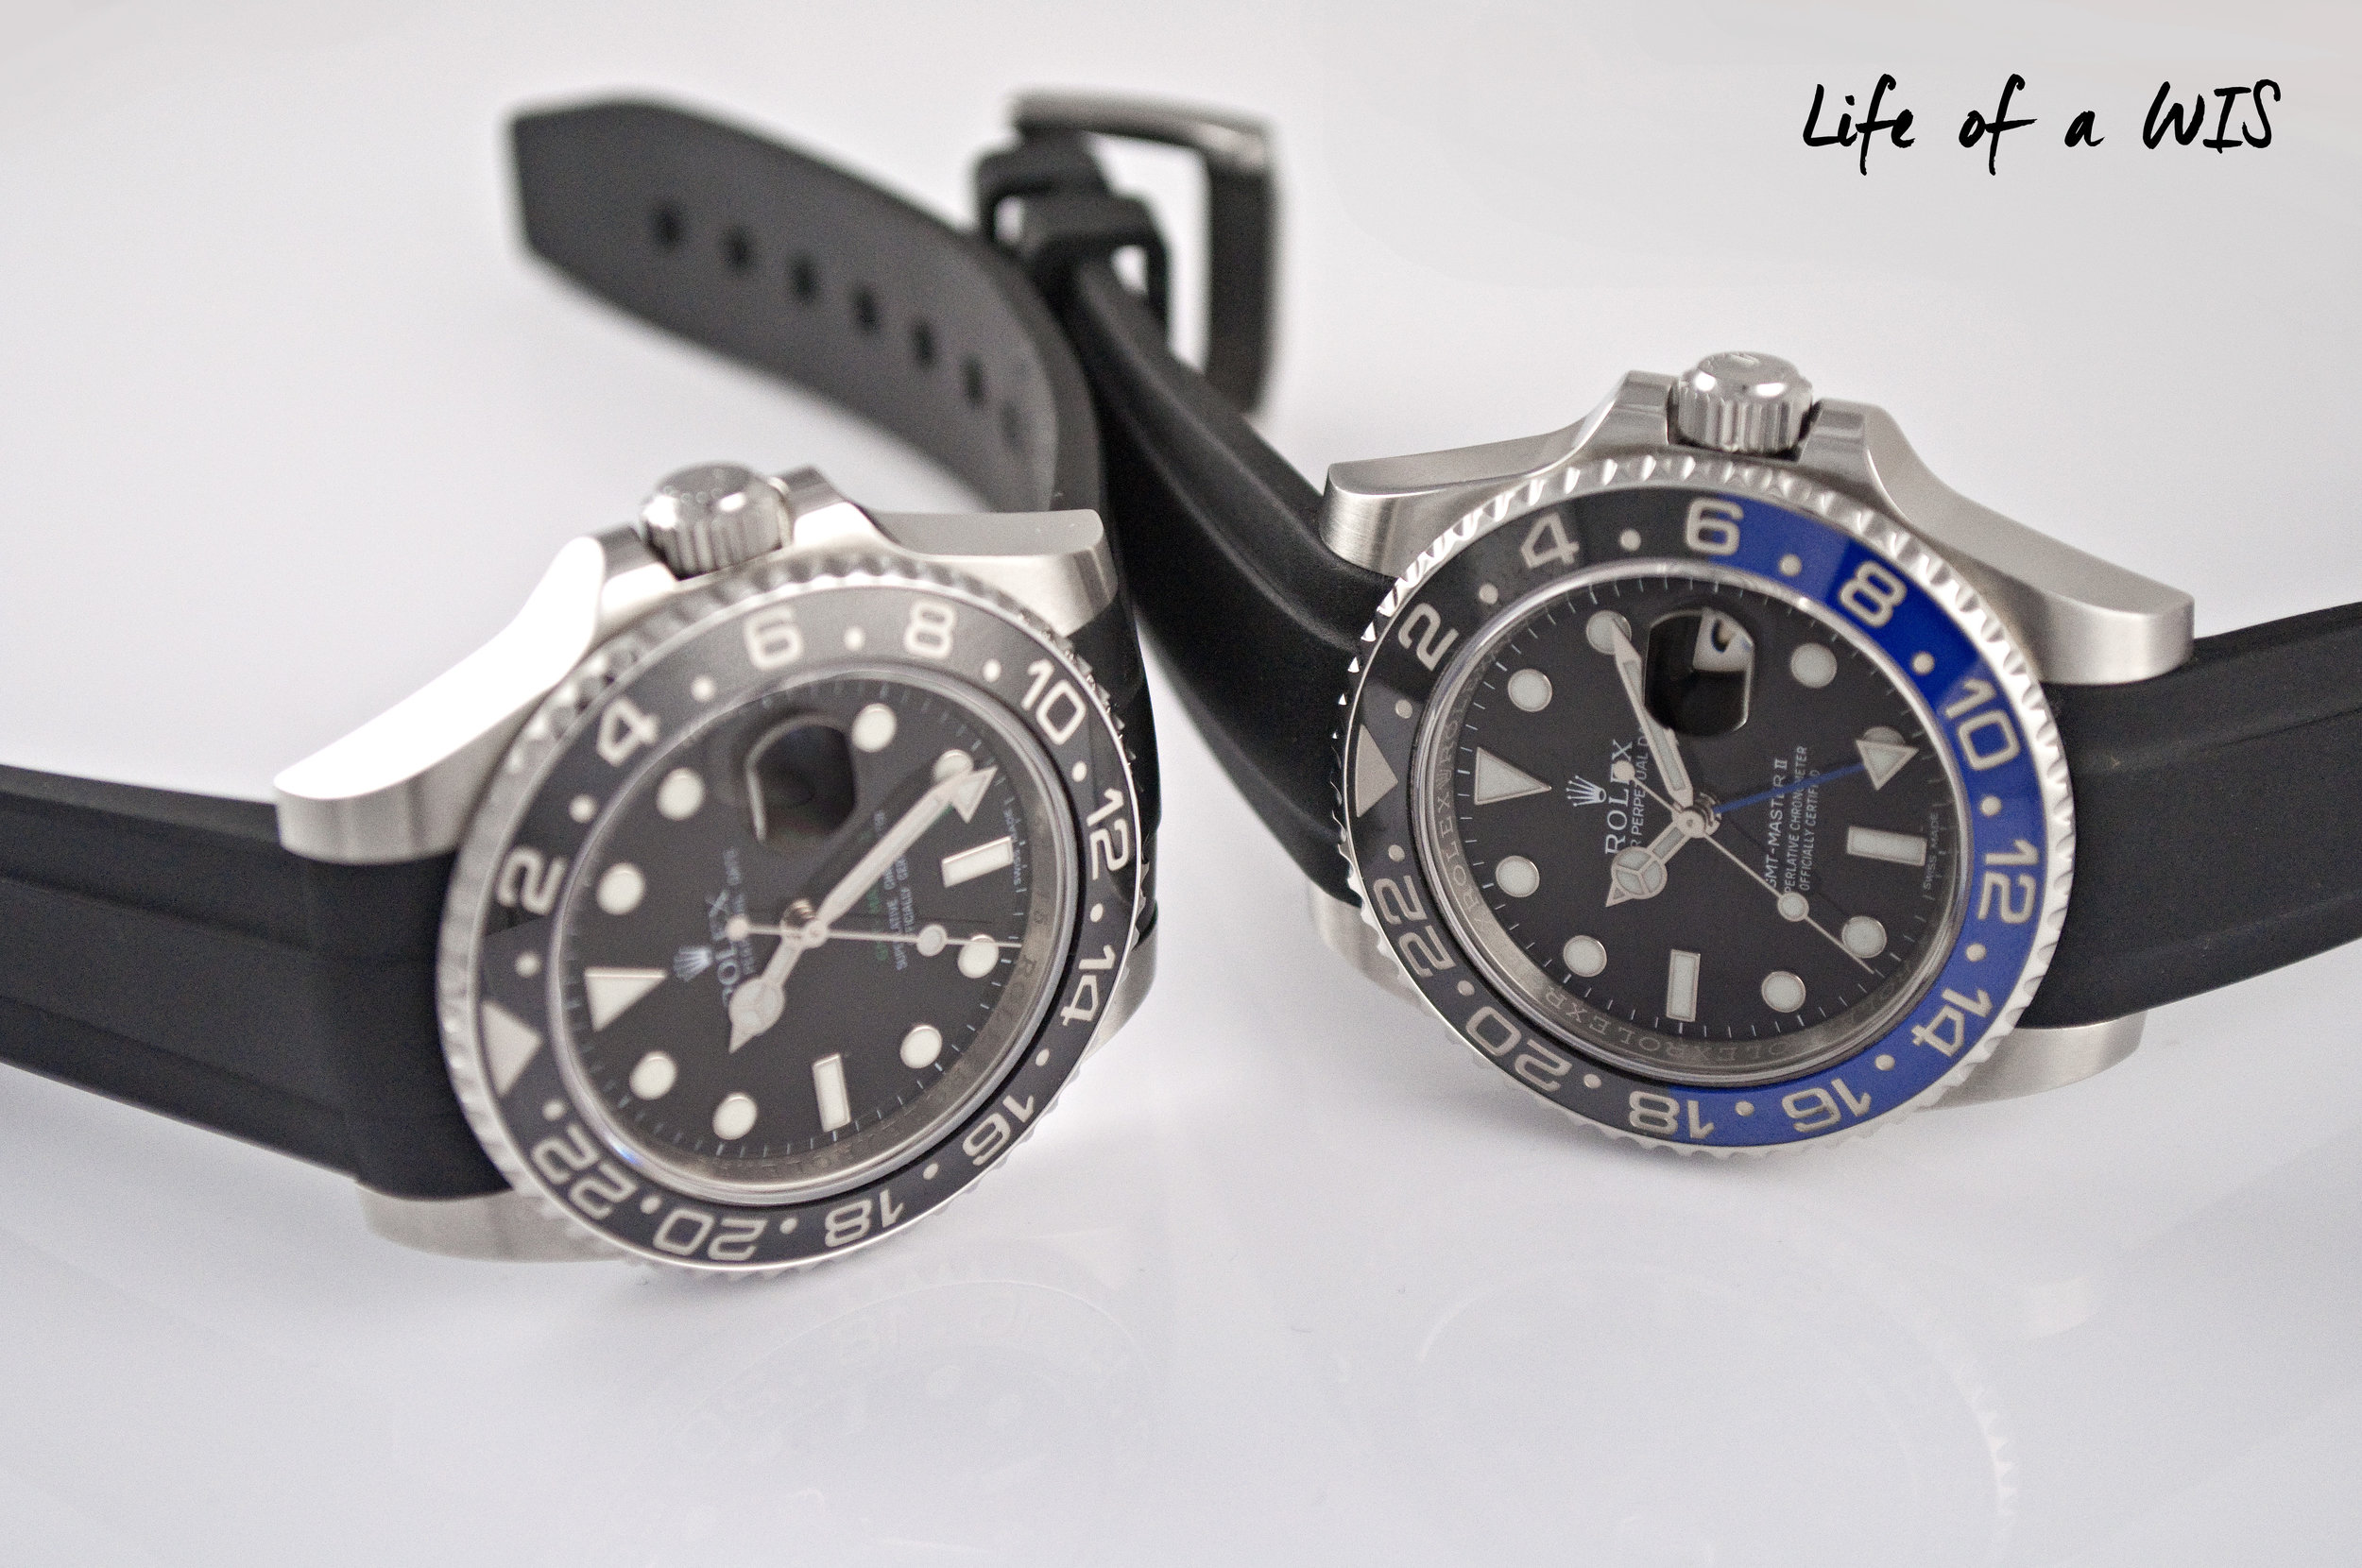 Both straps will give your Rolex a new and refreshing look.